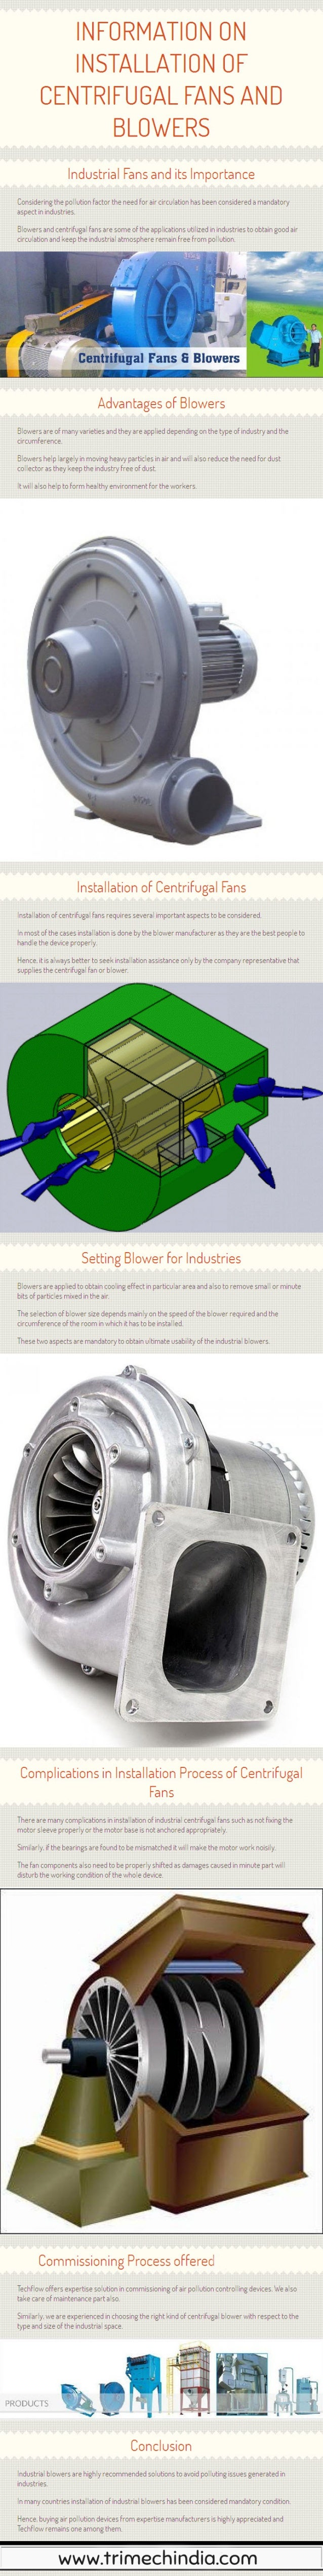 Information on Installation of Centrifugal fans and blowers